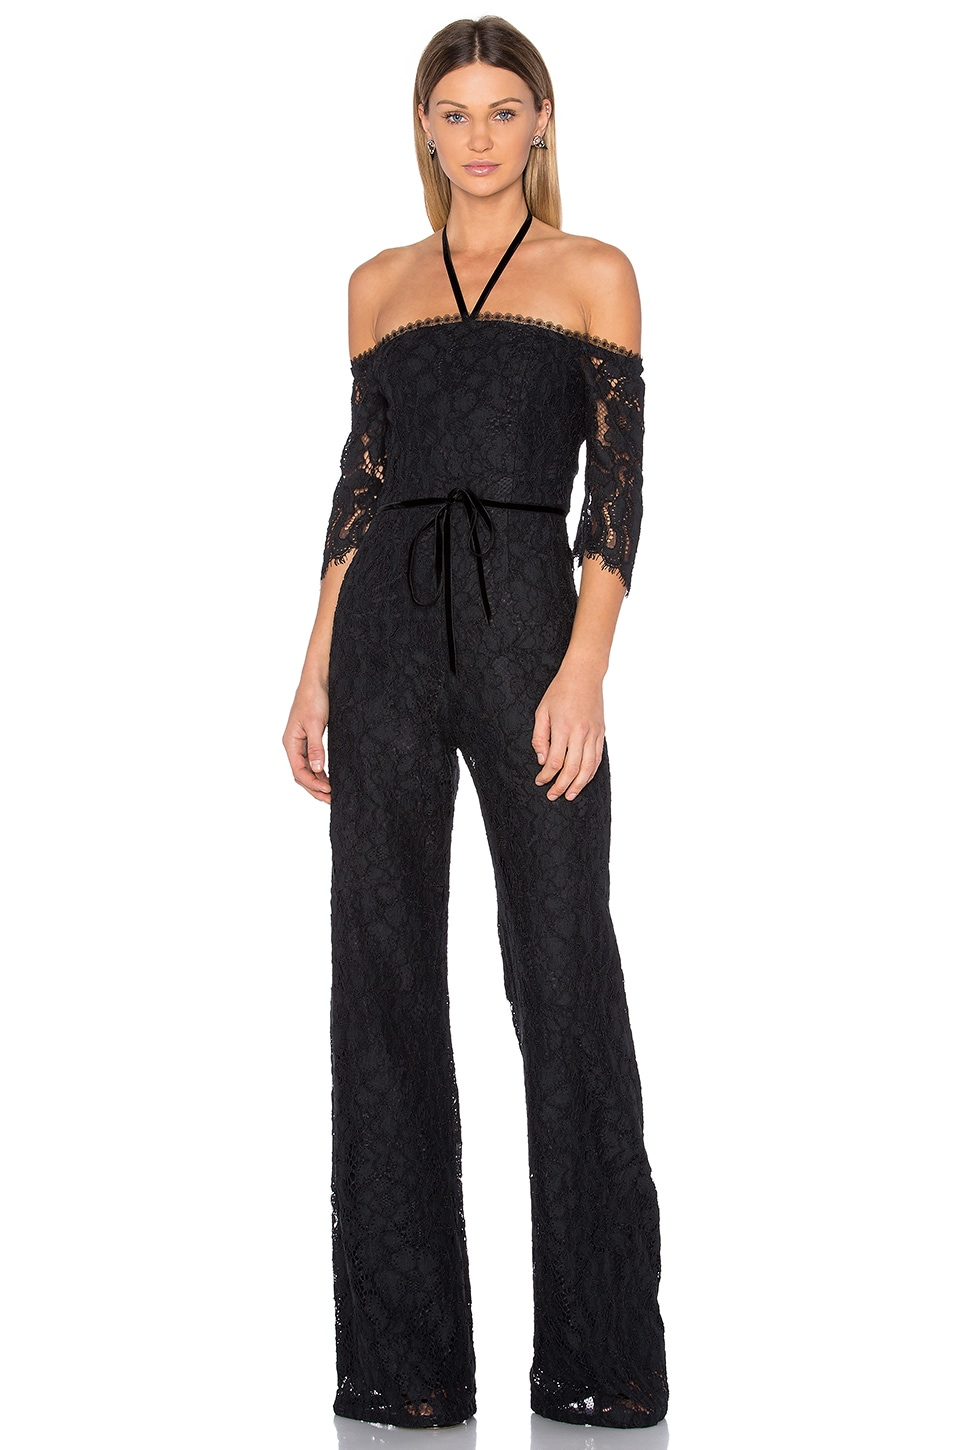 Alexis Joaquin Jumpsuit in Black Lace